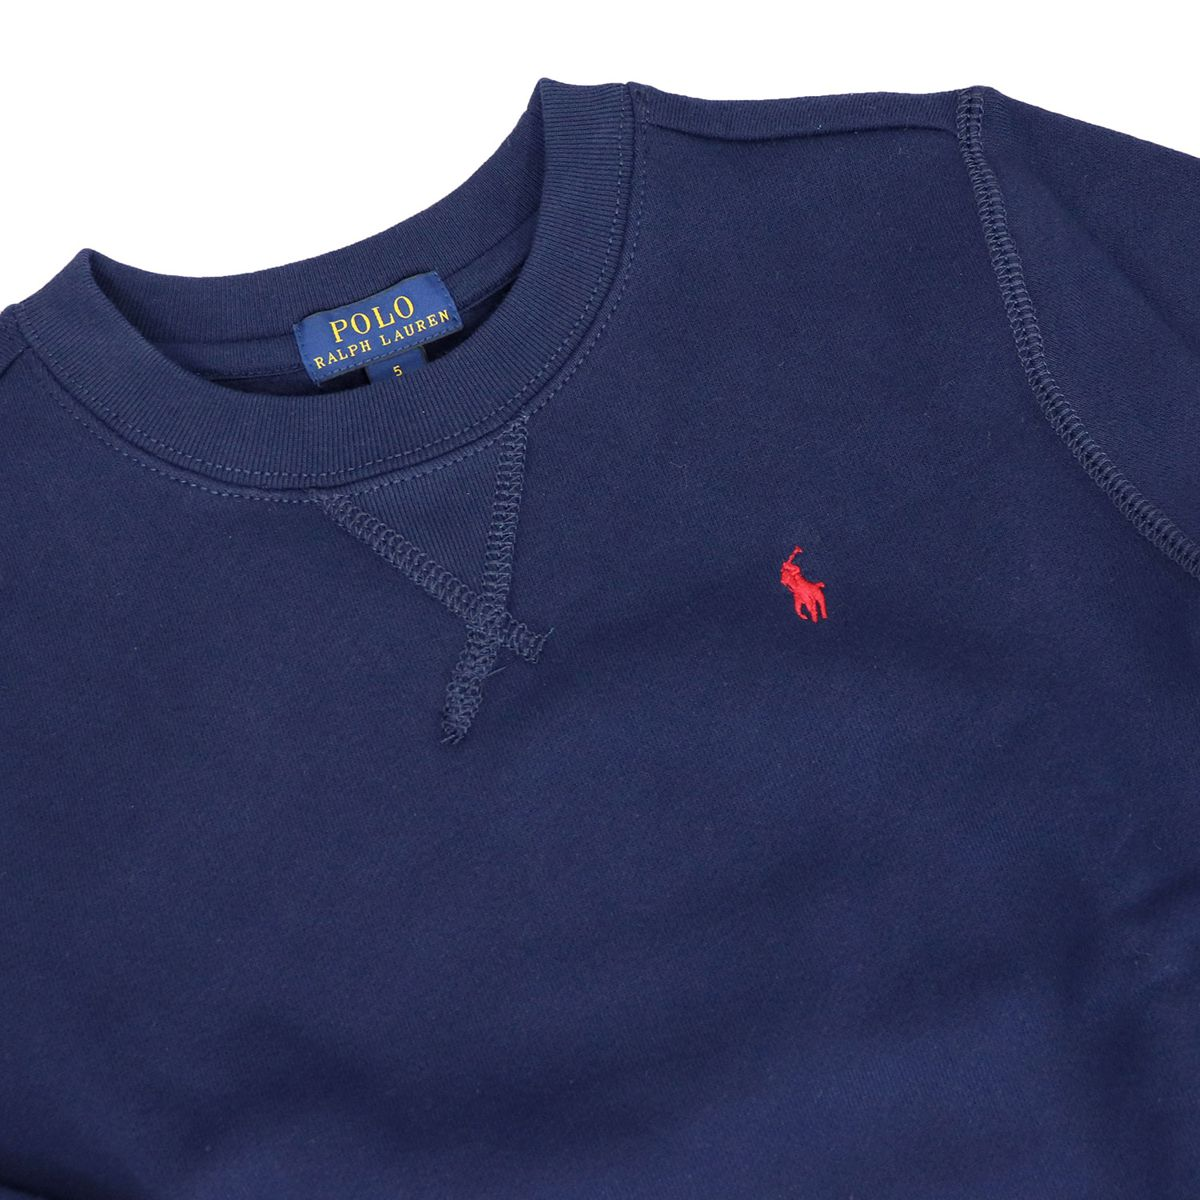 Crewneck sweatshirt in cotton blend with contrast logo Blue Polo Ralph Lauren